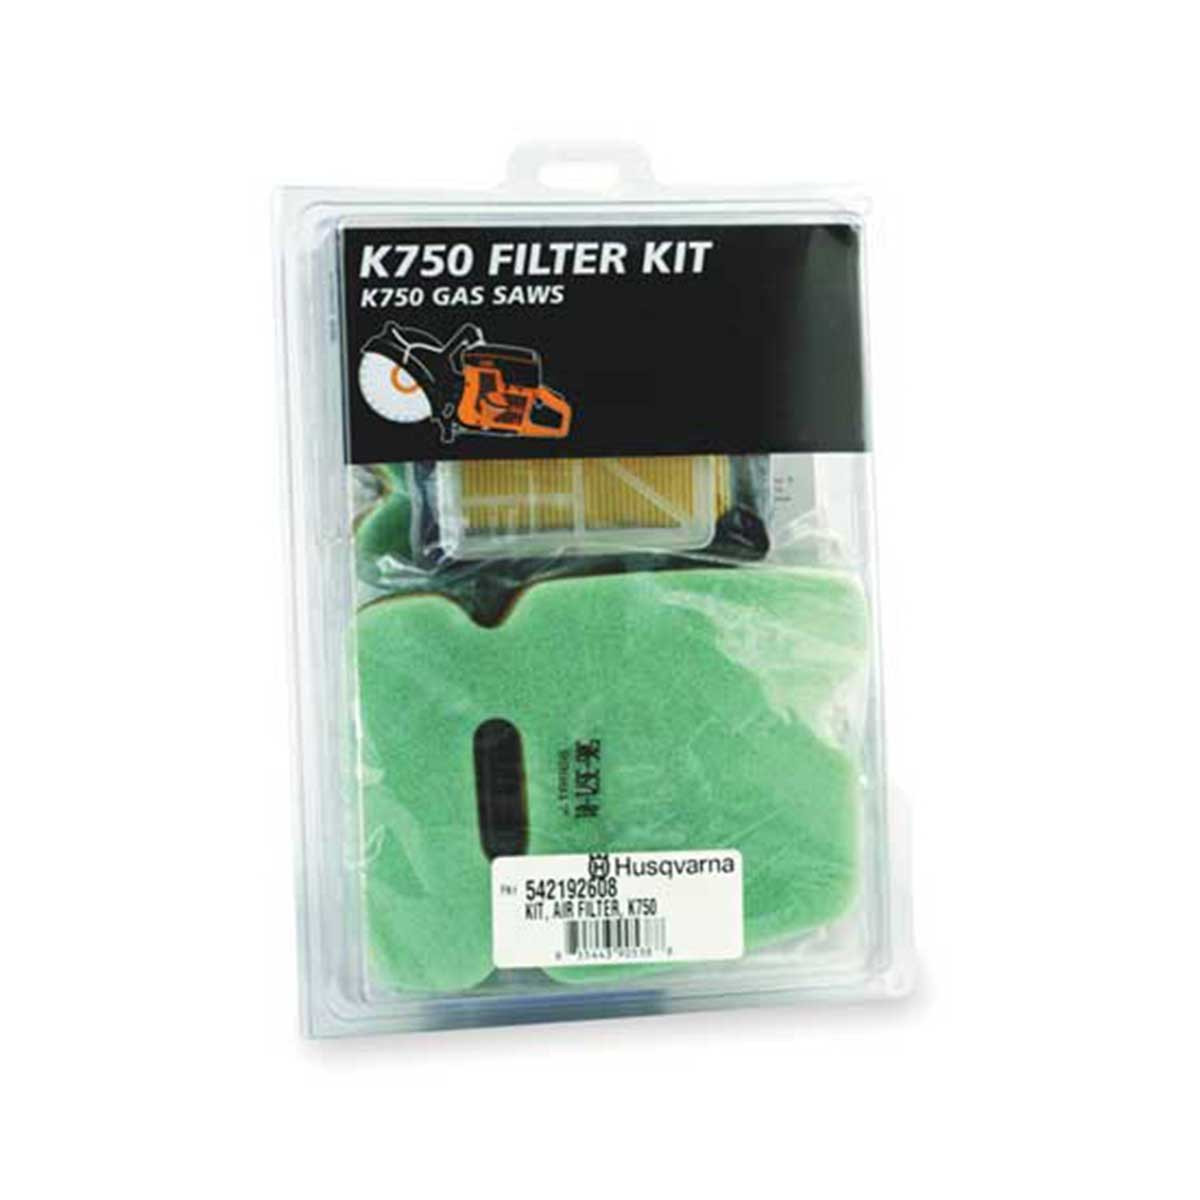 Husqvarna Filter Kit for K750